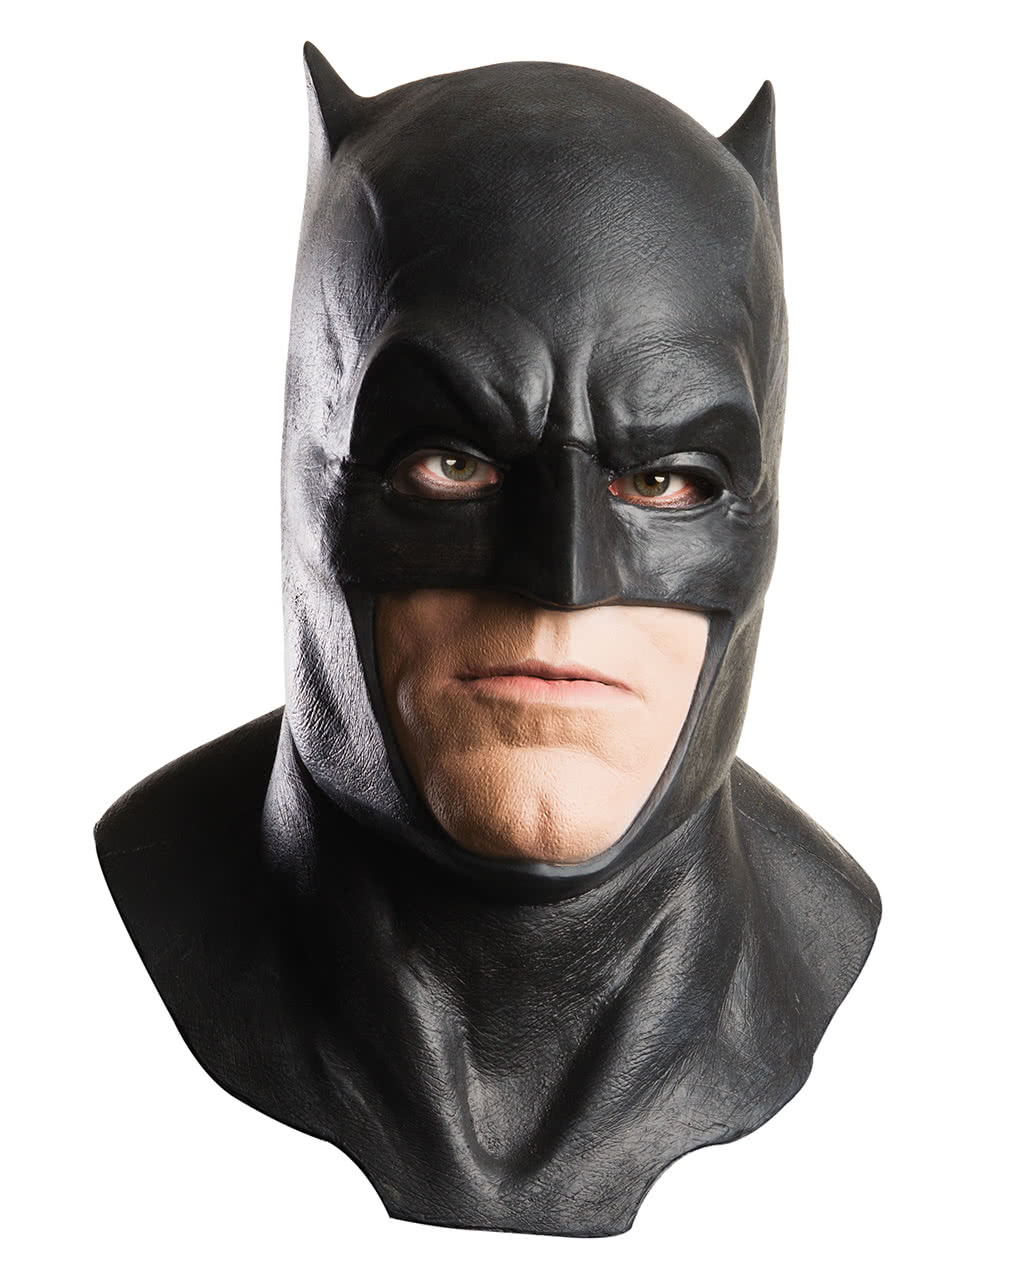 dawn of justice batman latex maske lizenzierte dc comics maske horror. Black Bedroom Furniture Sets. Home Design Ideas